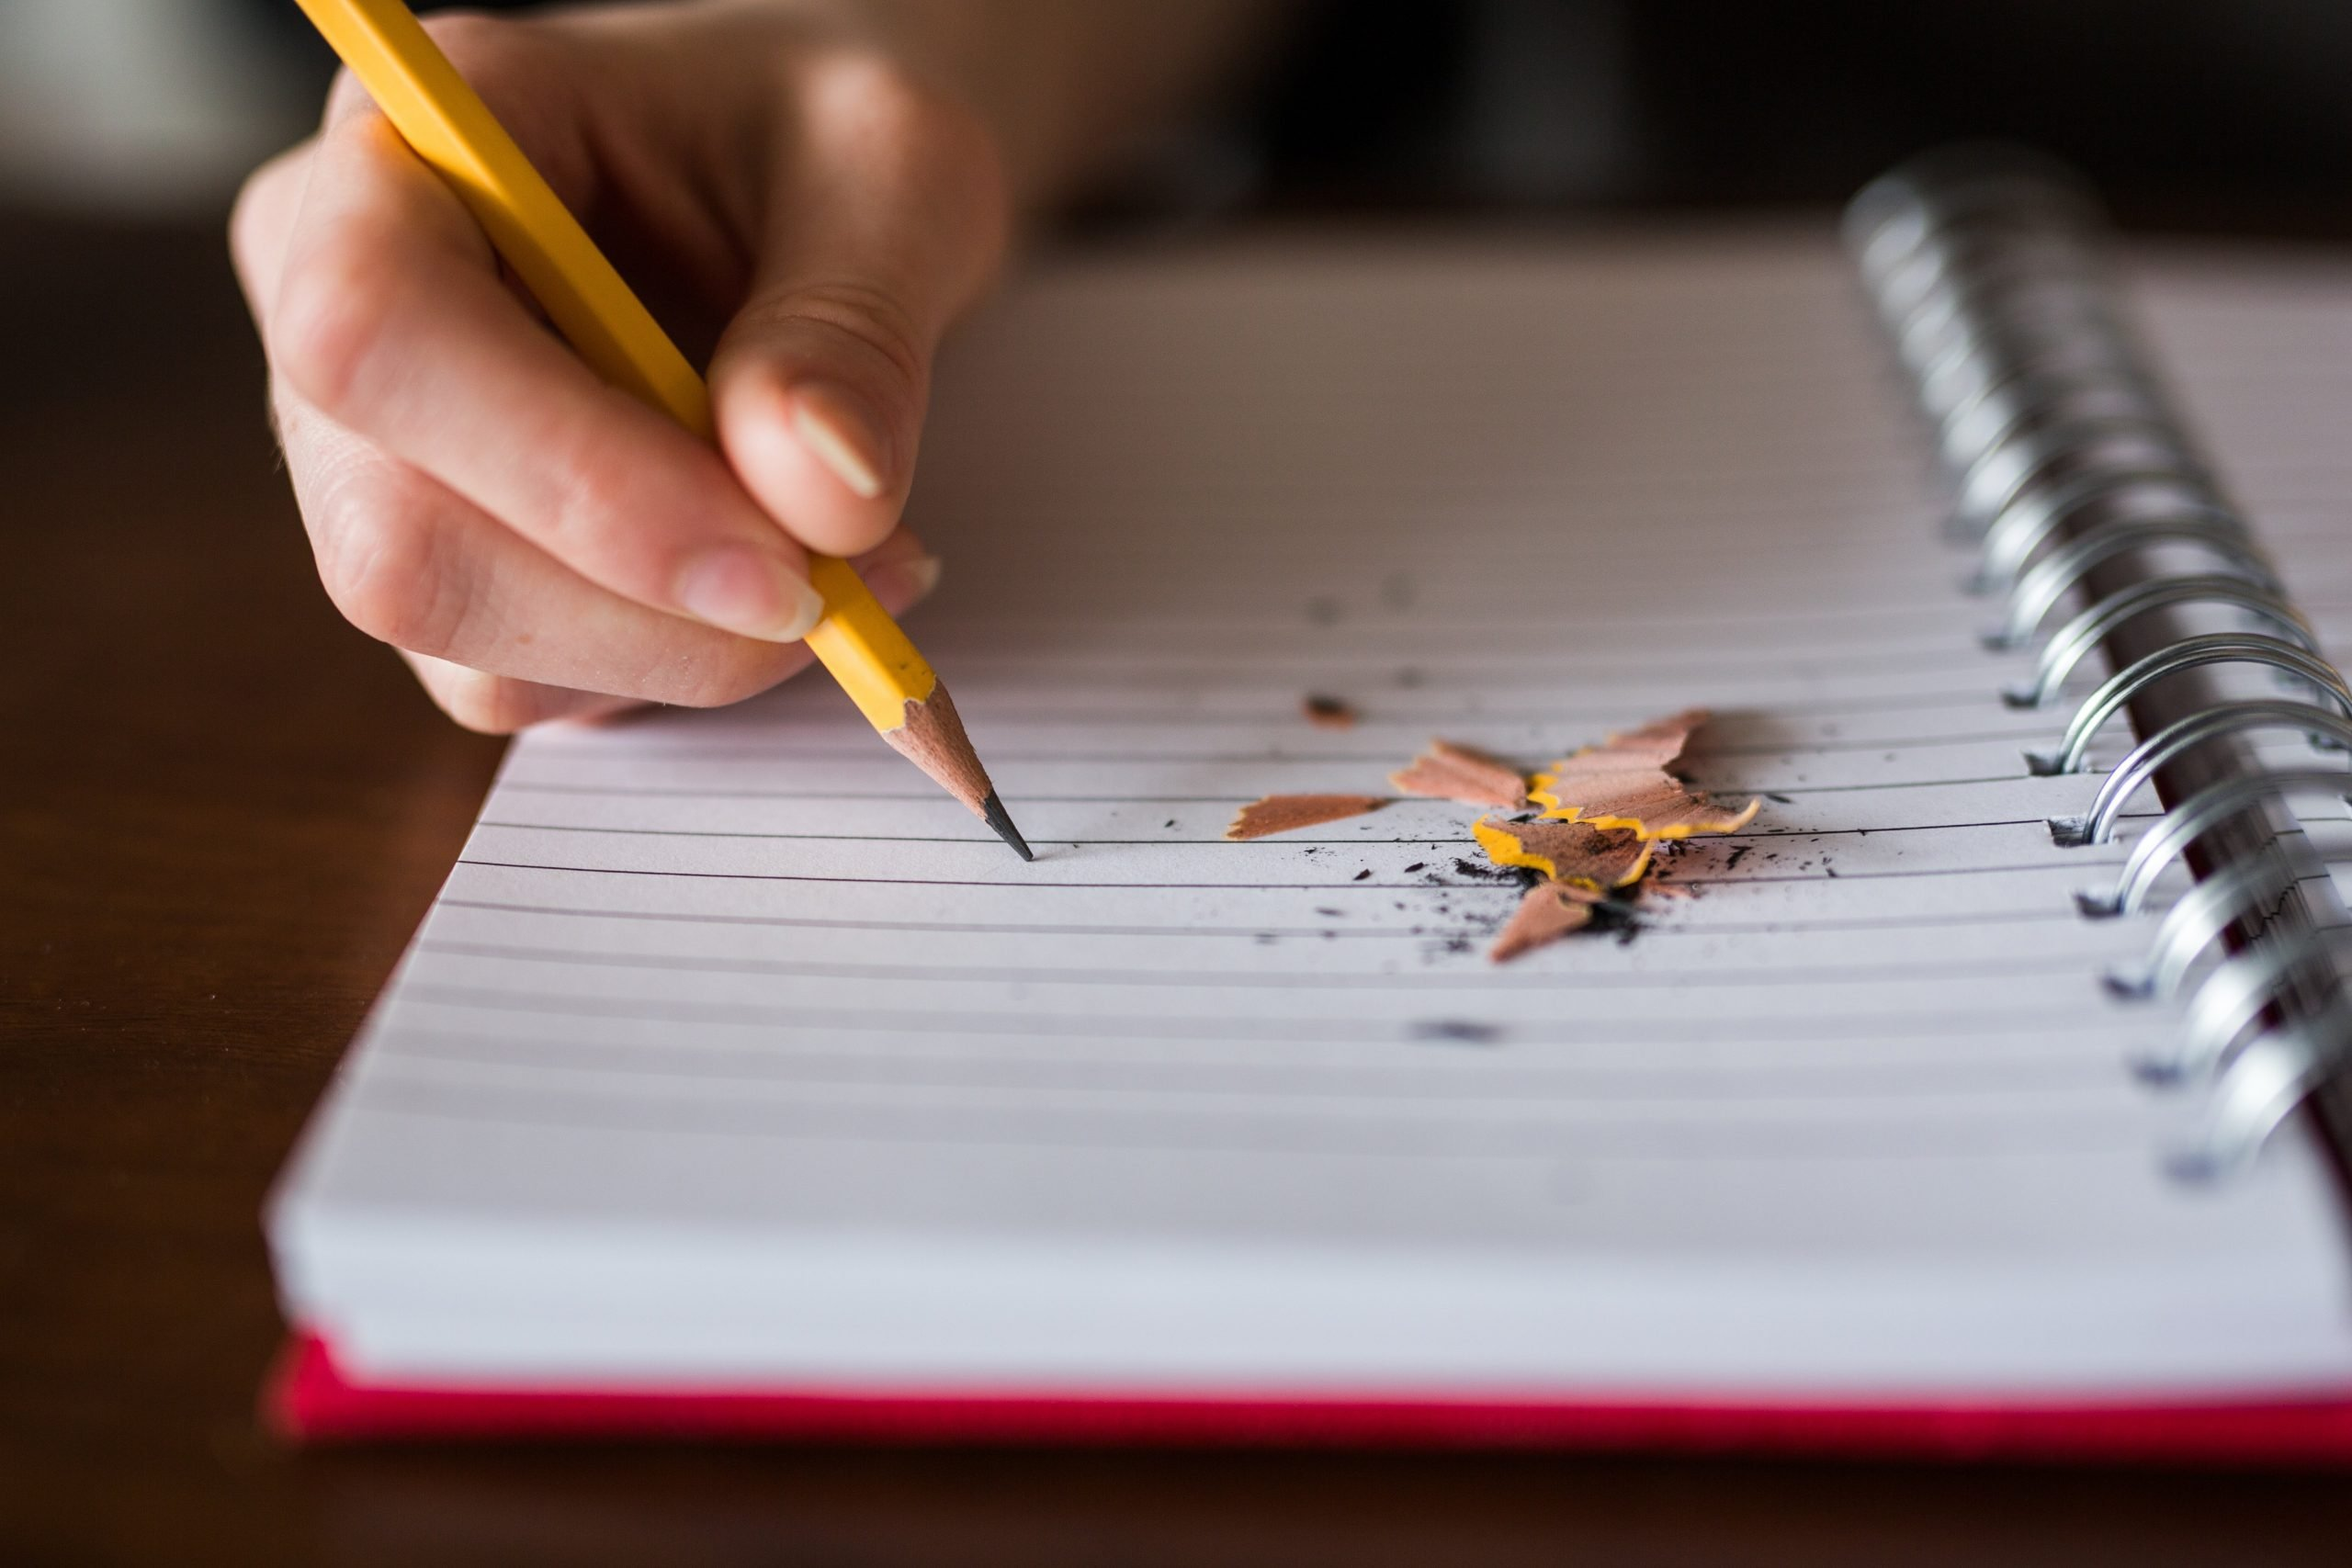 A closeup image of a person writing on lined paper with a pencil. Pencil shavings lie nearby.